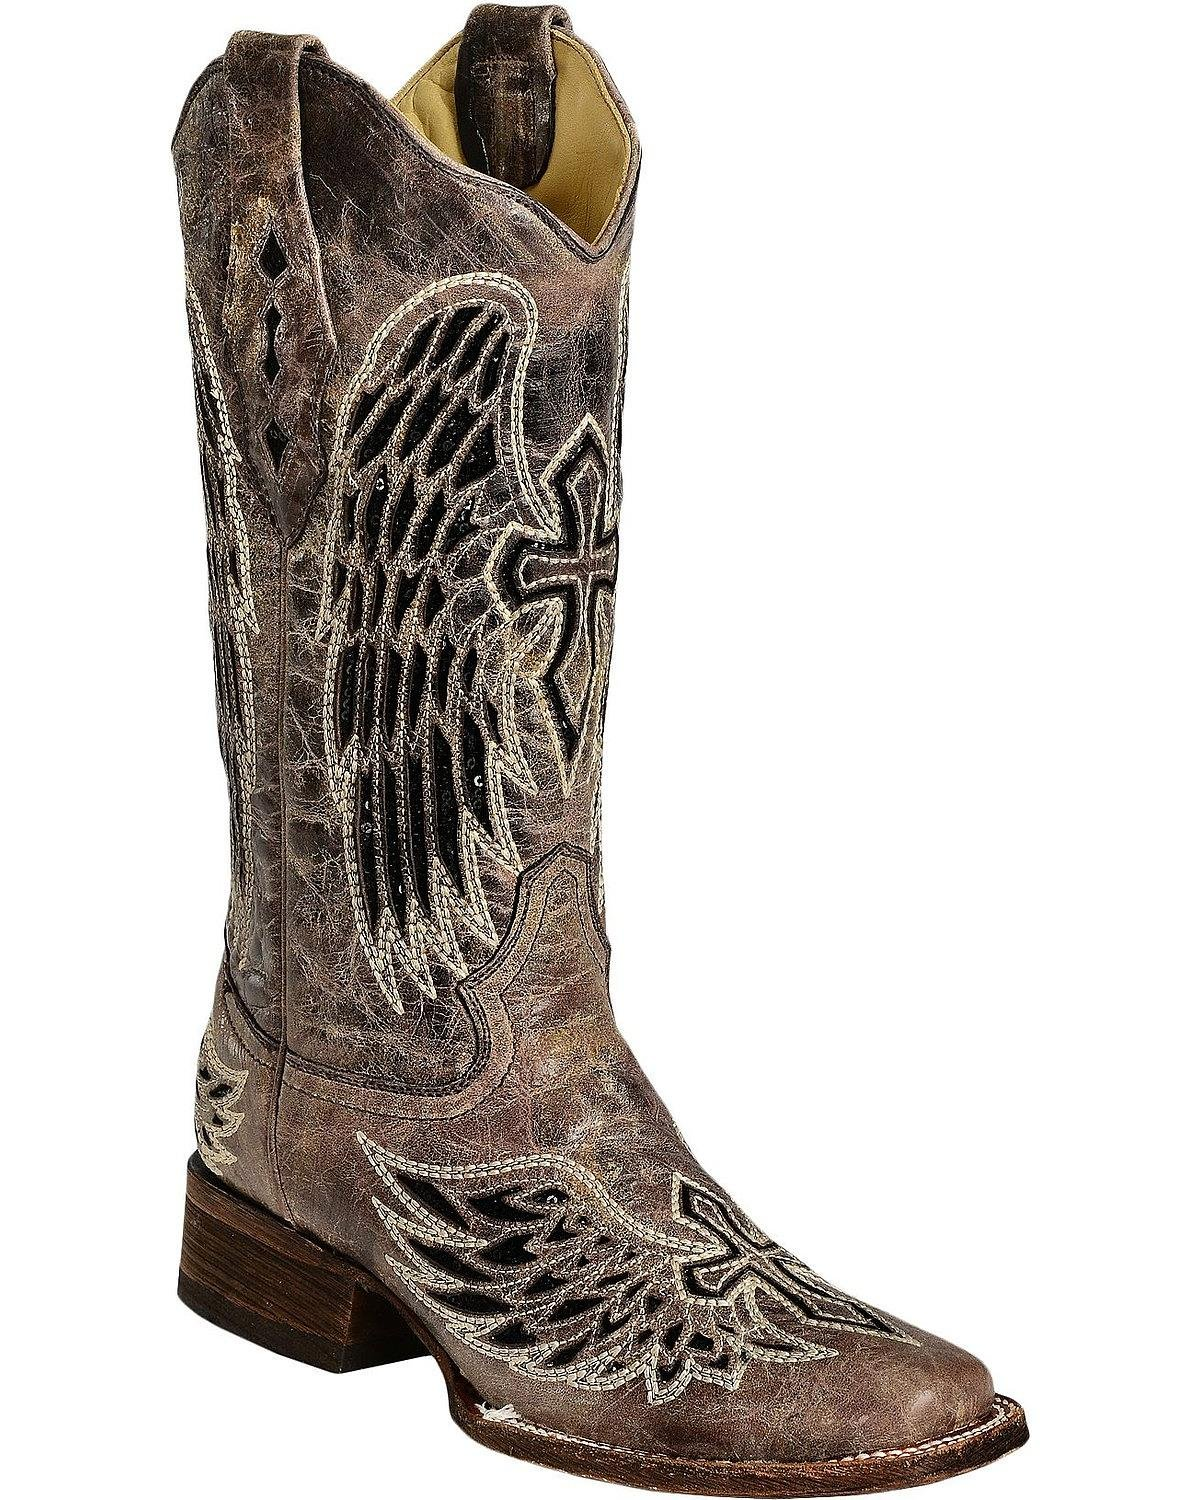 Corral Ladies Wing and Cross Sequin Square Toe Western Boot B00DZ4S47E 9 B(M) US|Black